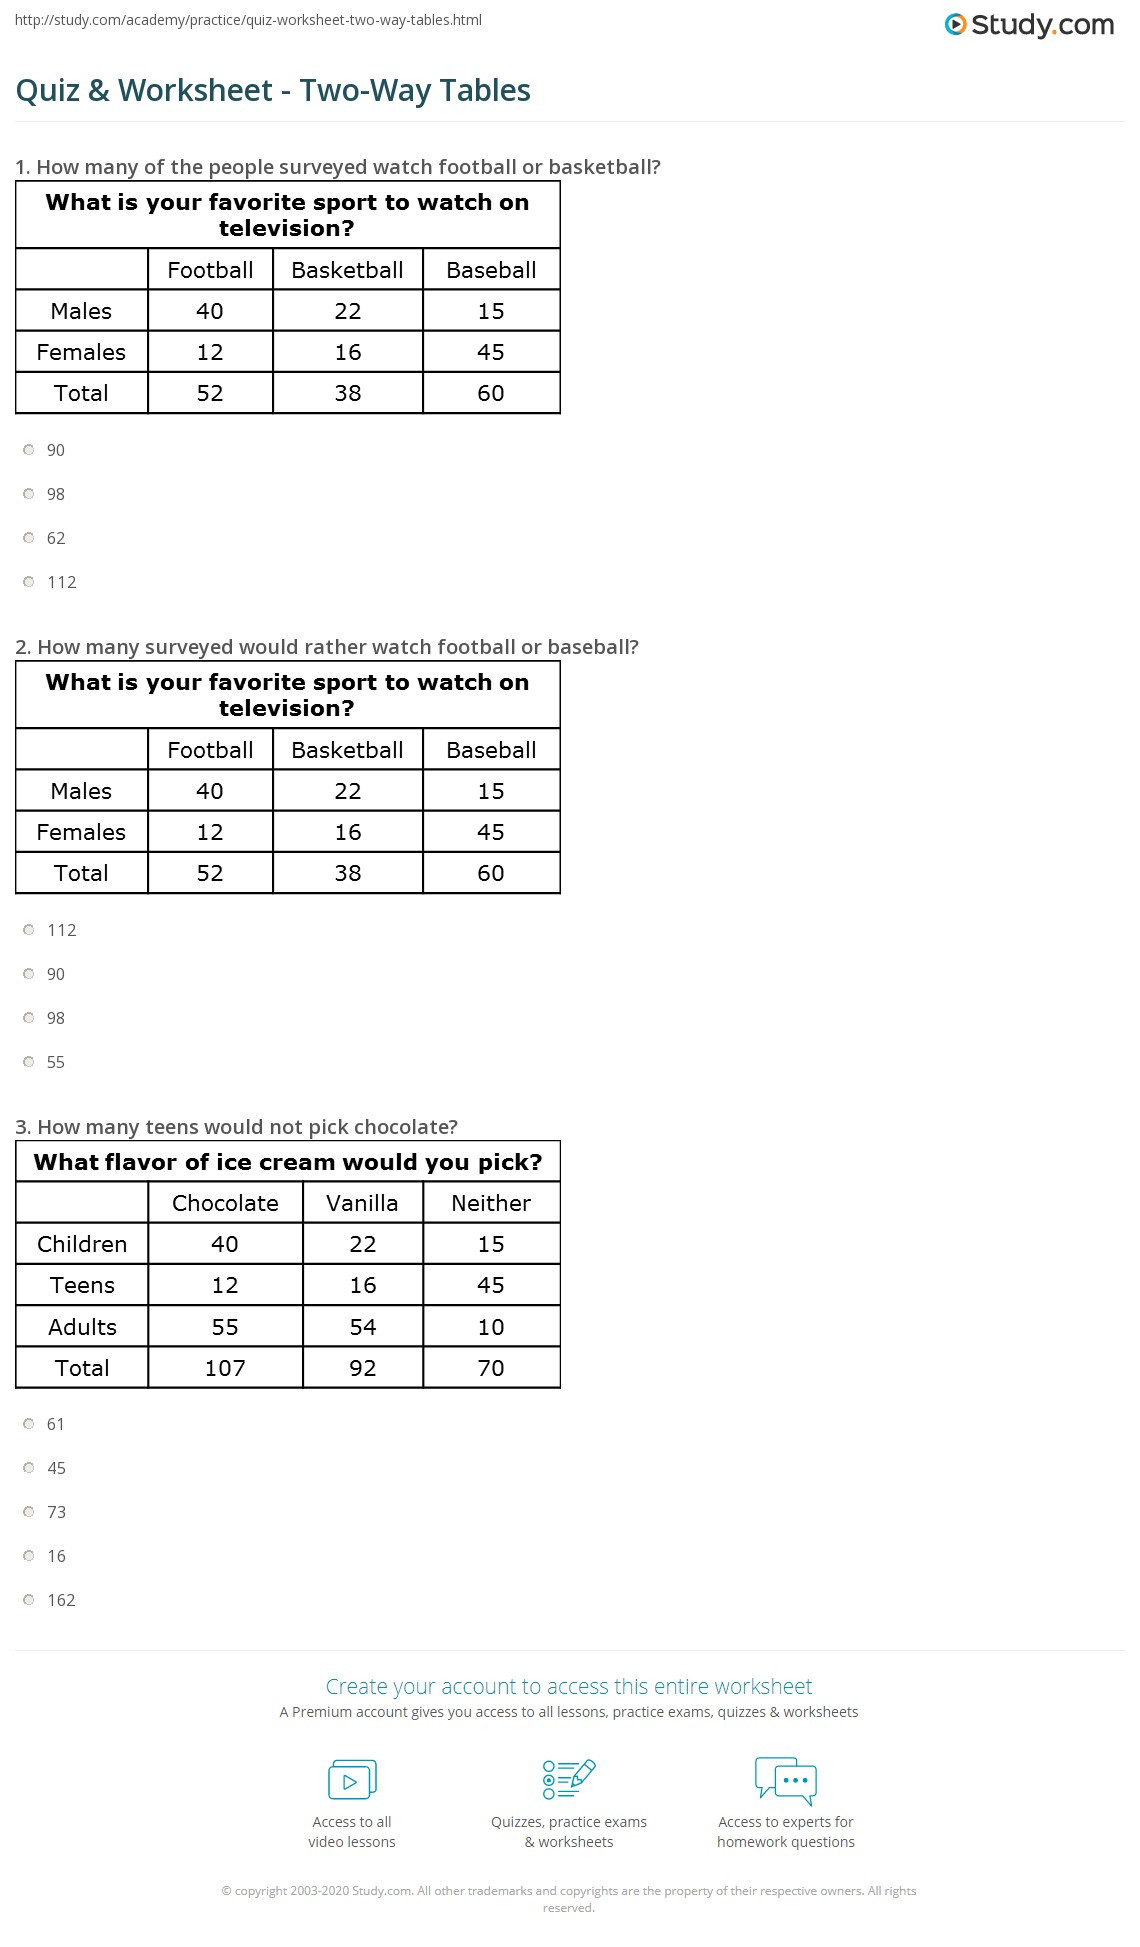 Frequency Table Worksheet 6th Grade 31 2 Way Frequency Table Worksheet Worksheet Resource Plans